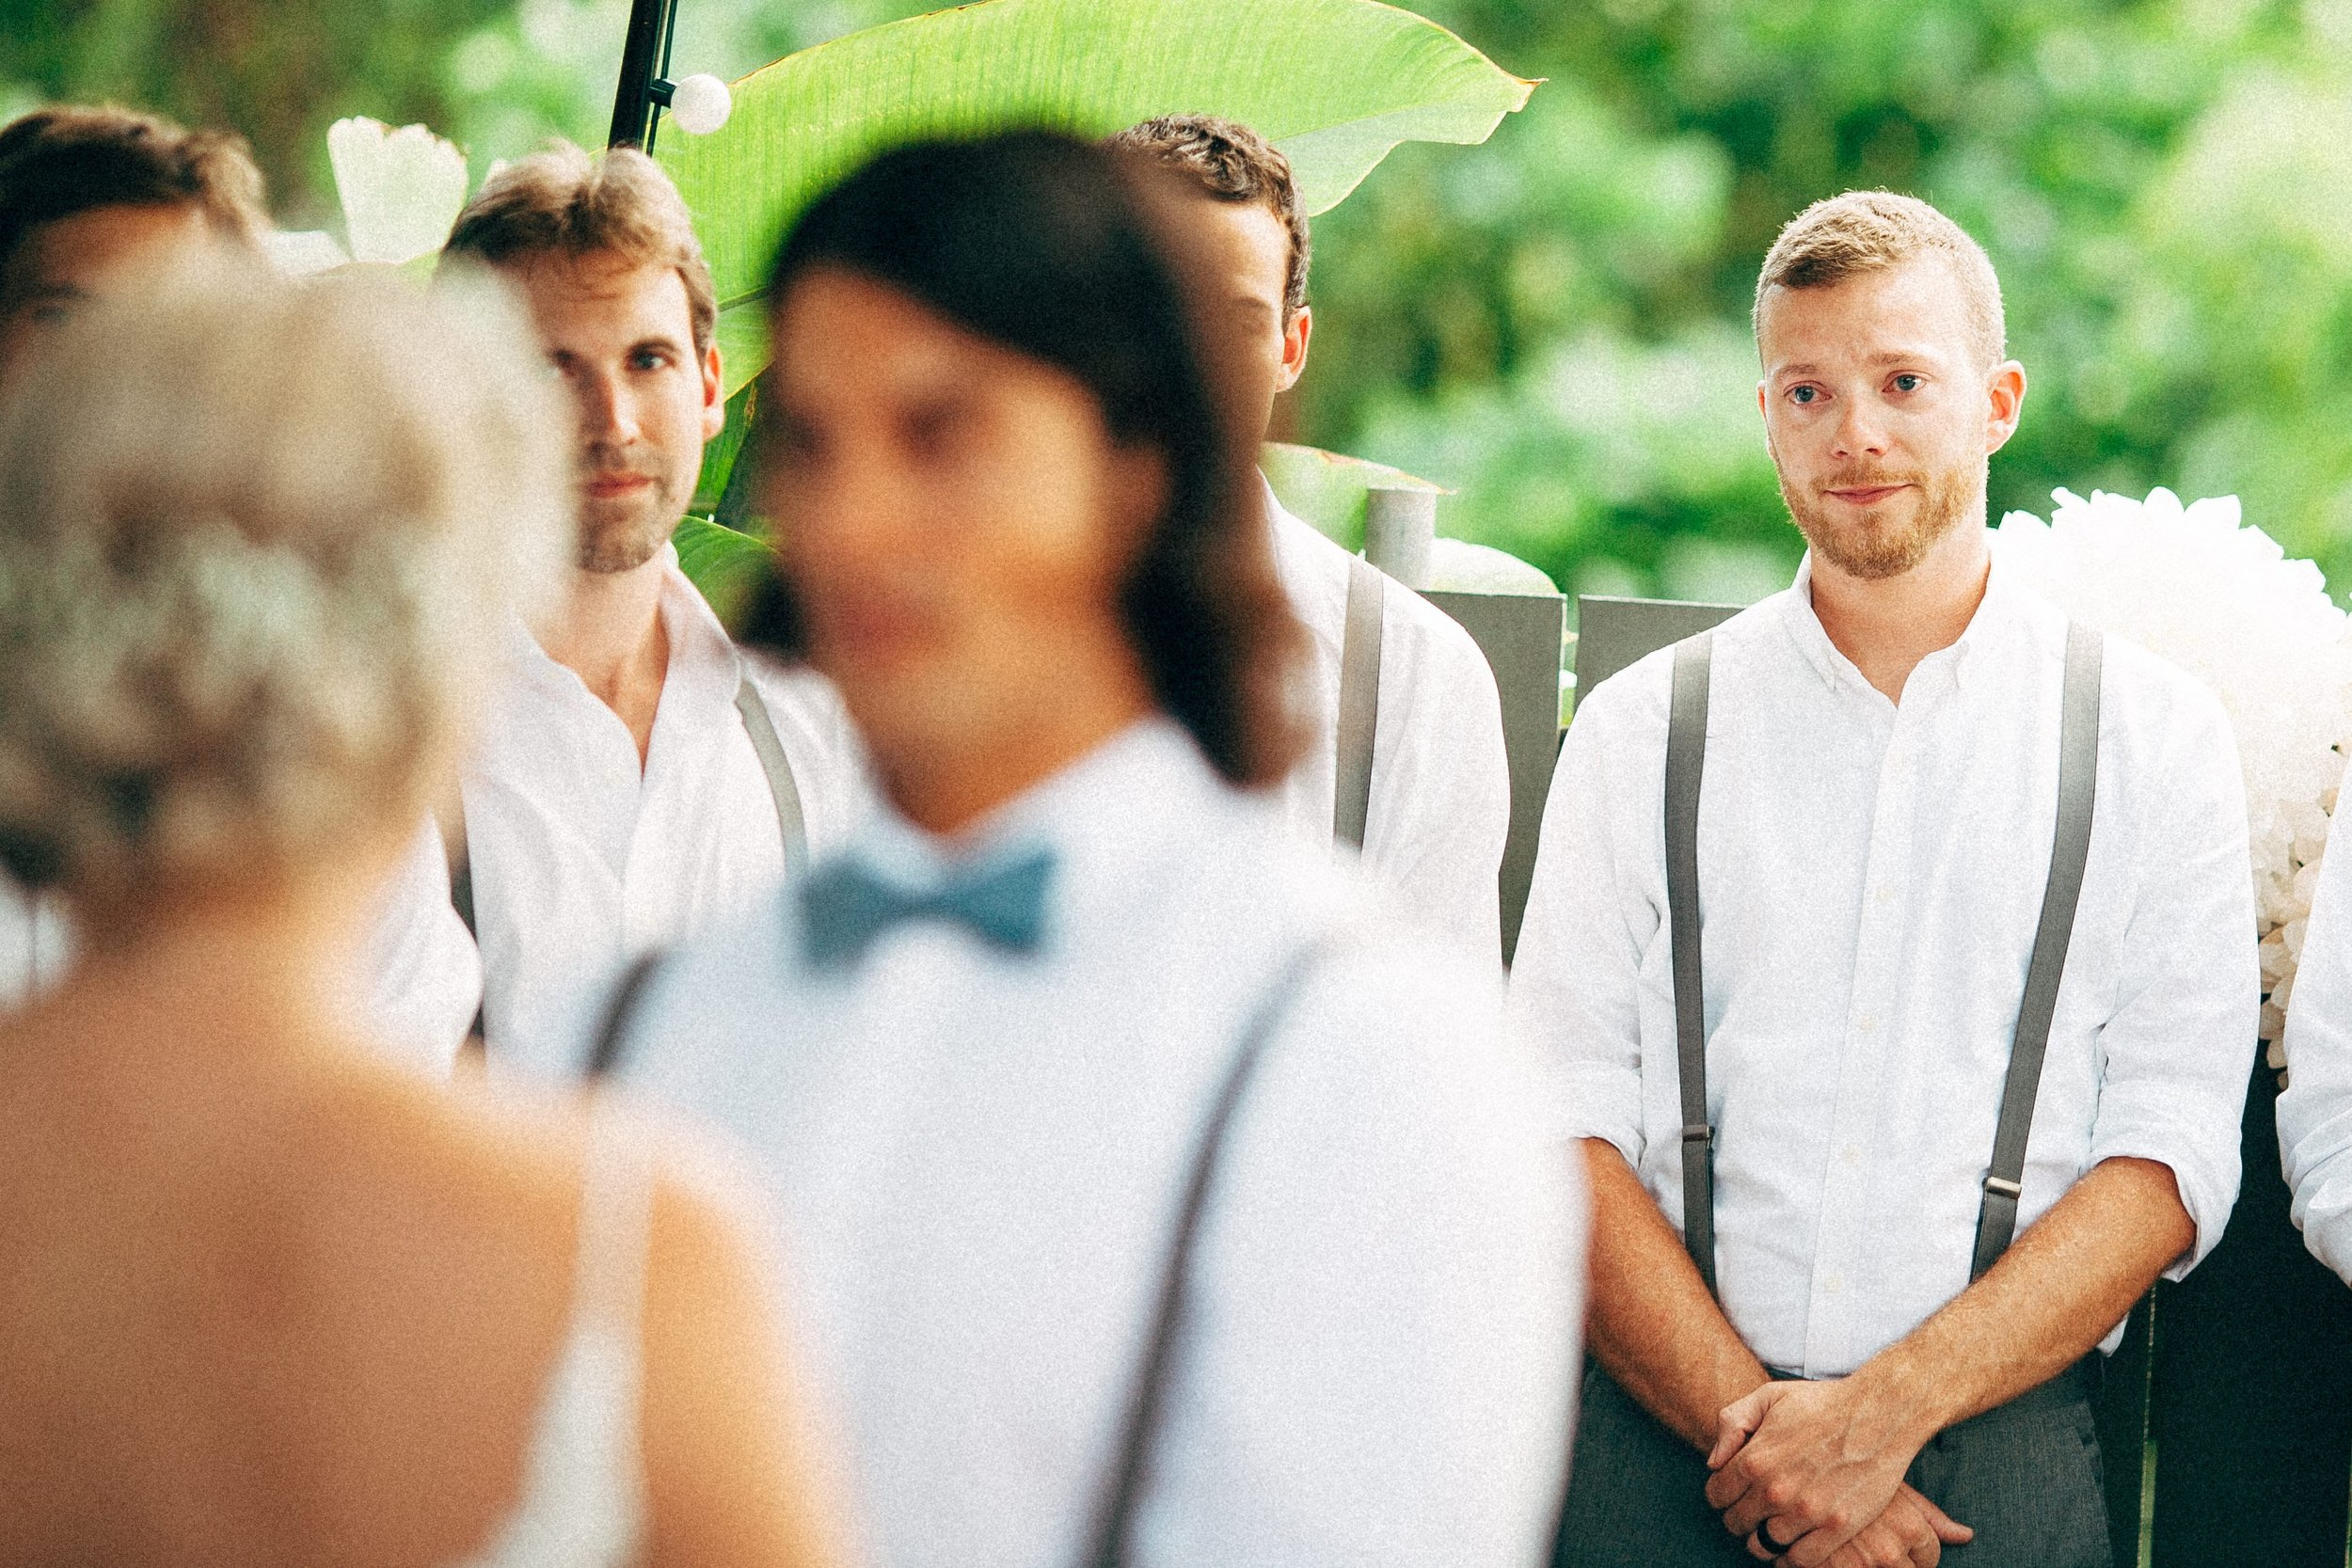 One of J&C's groomsmen during their vows.